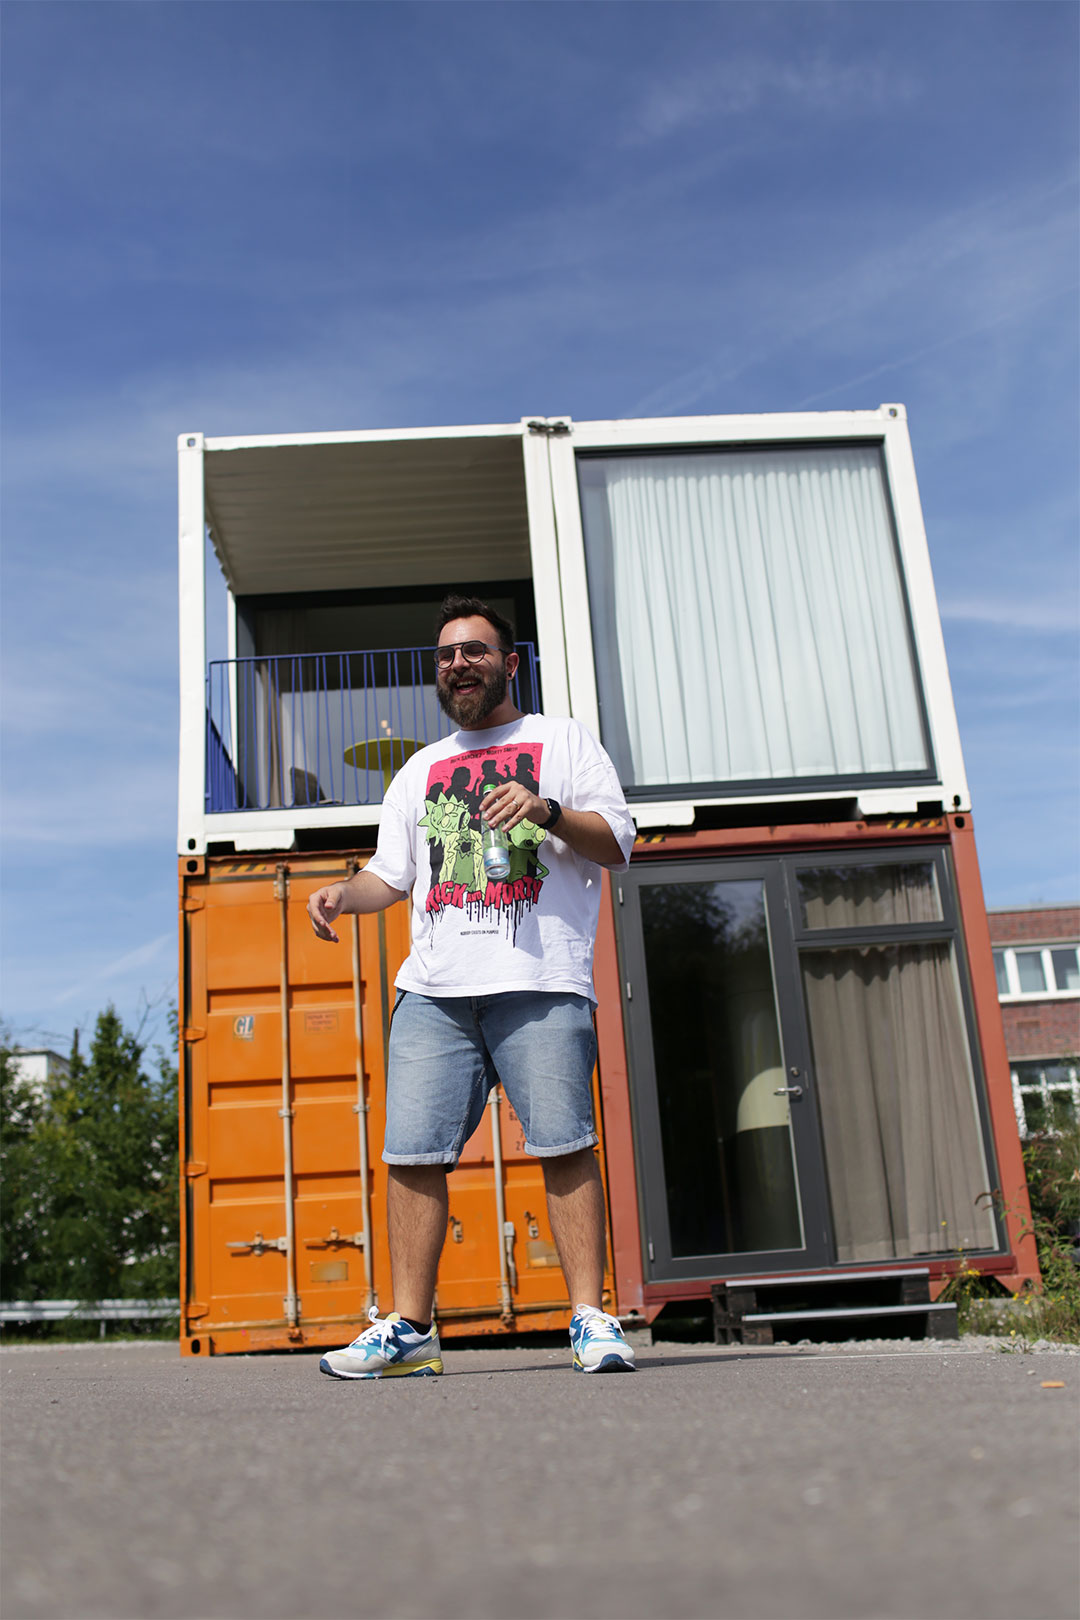 Containerfreude